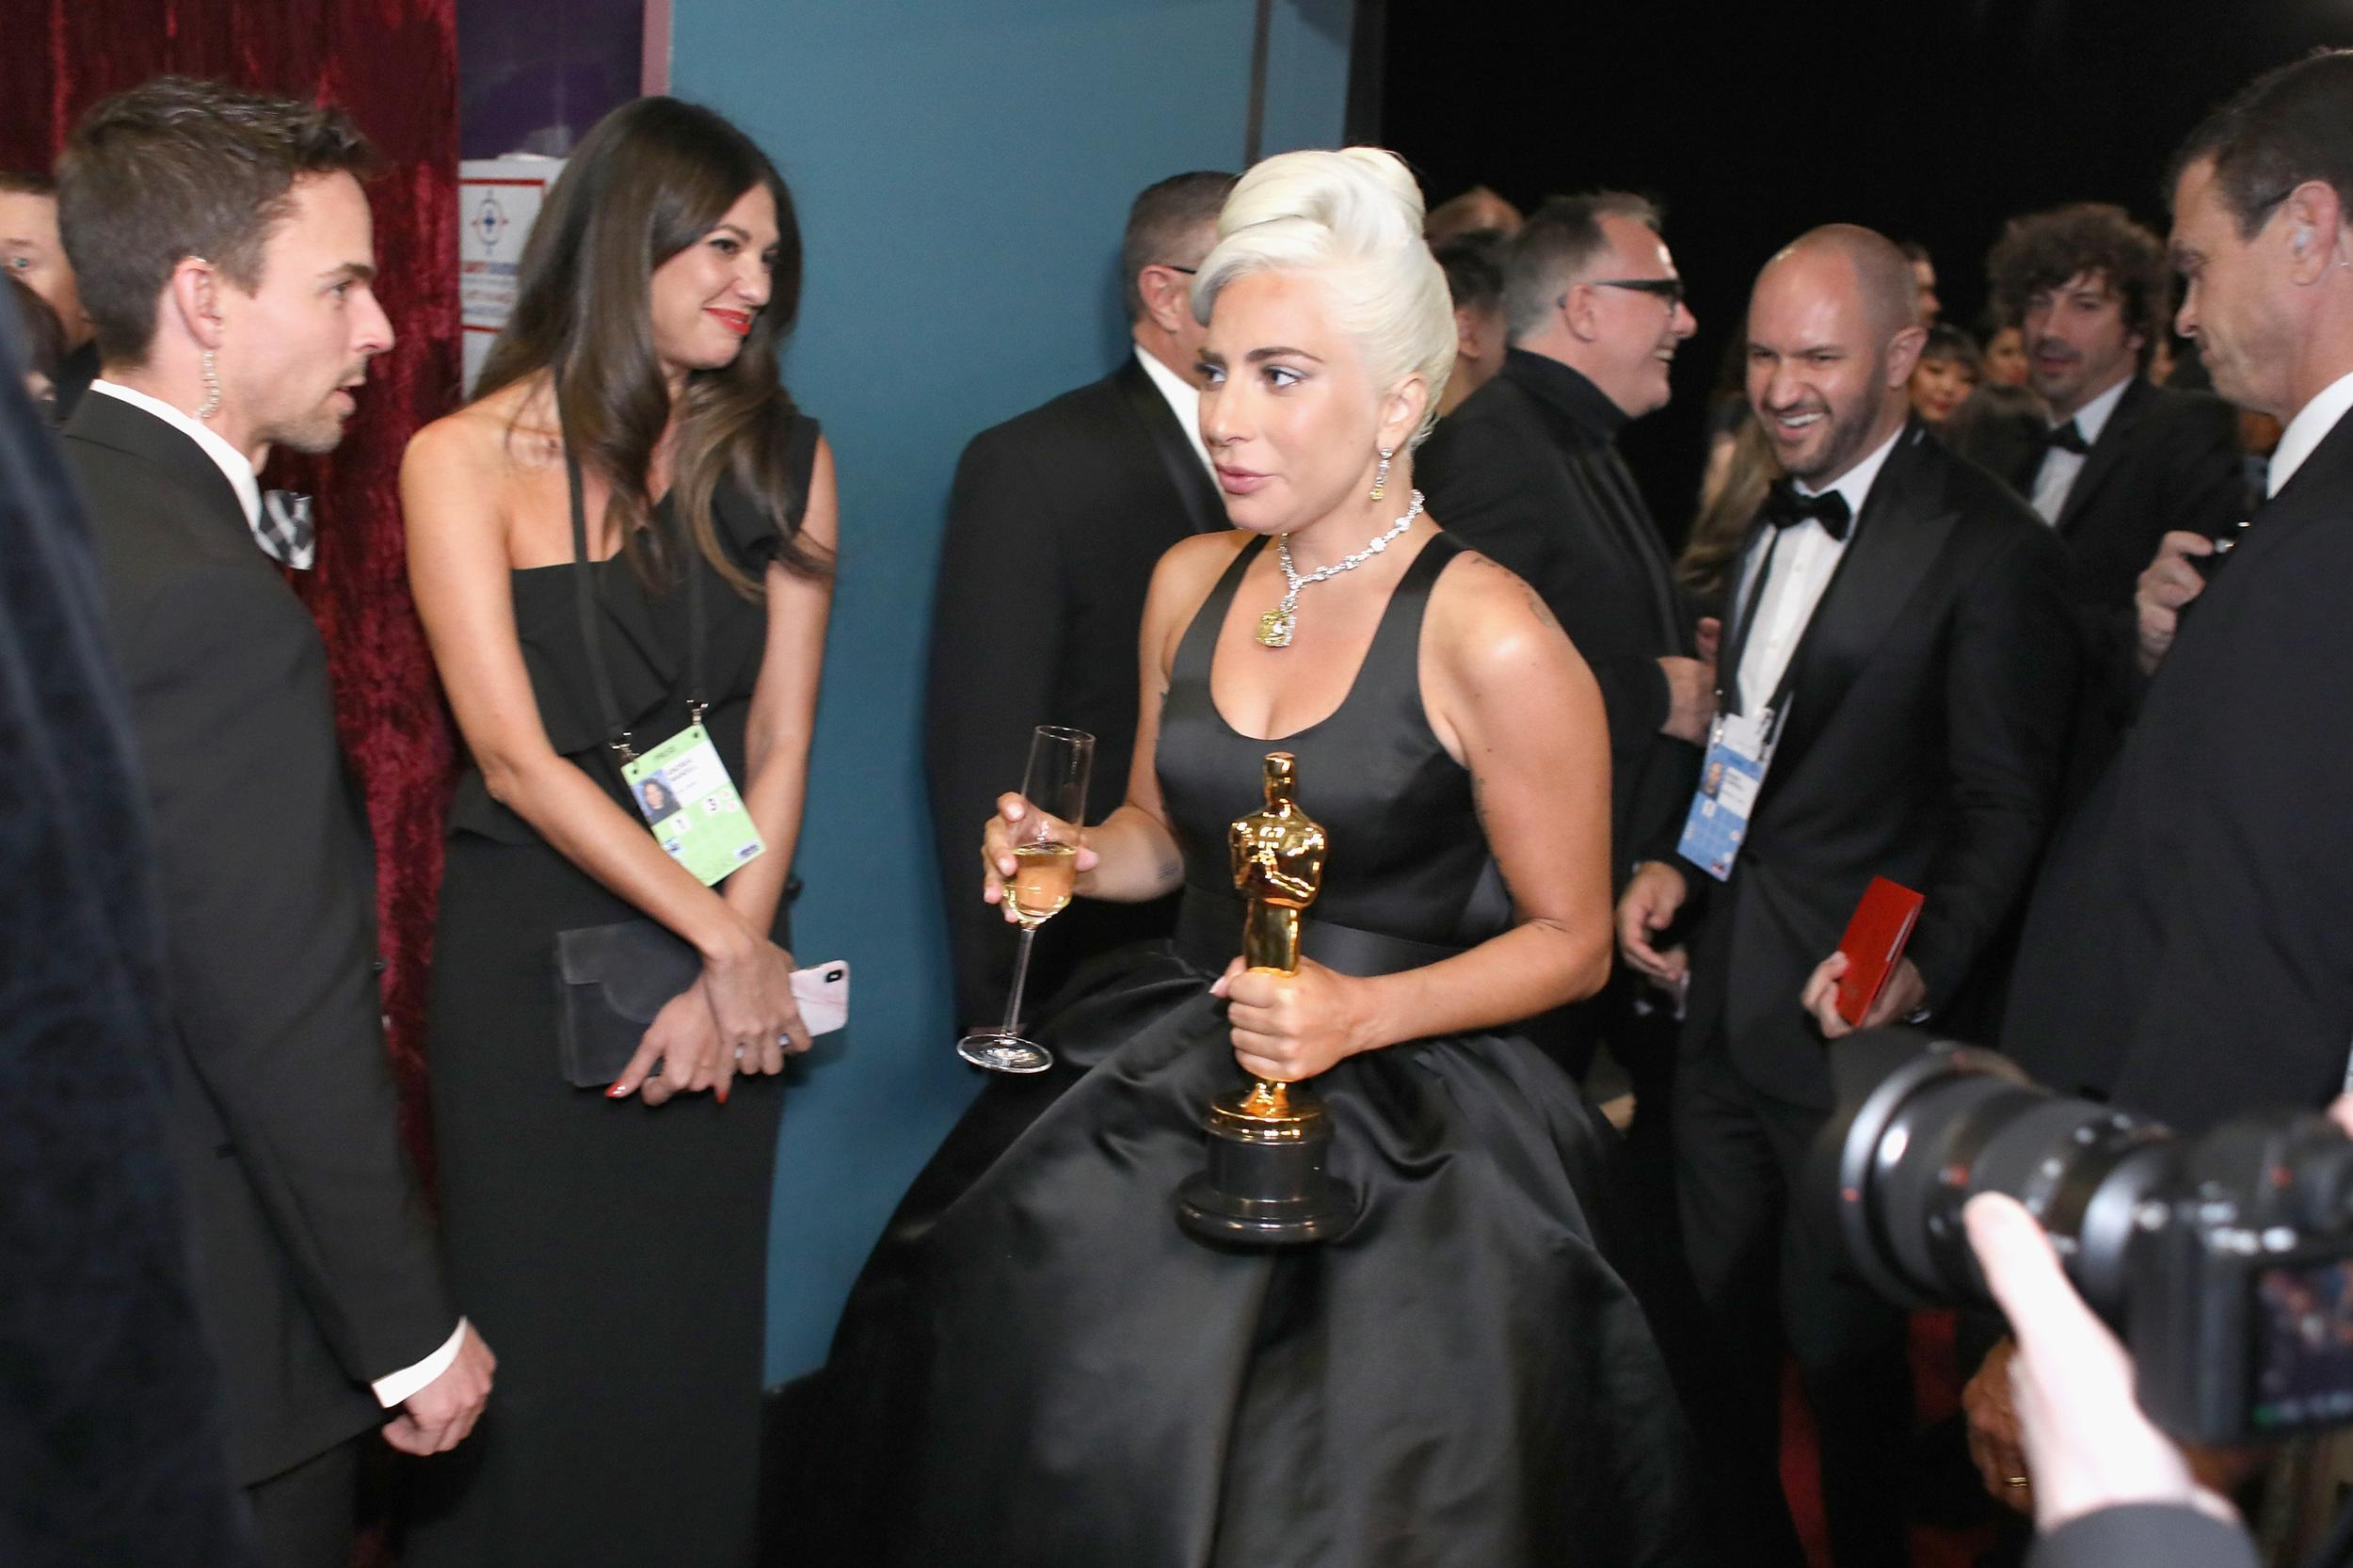 HOLLYWOOD, CA - FEBRUARY 24:  In this handout provided by A.M.P.A.S., Lady Gaga poses with the Music (Original Song) award for 'Shallow' from 'A Star Is Born' backstage during the 91st Annual Academy Awards at the Dolby Theatre on February 24, 2019 in Hollywood, California.  (Photo by Matt Sayles - Handout/A.M.P.A.S. via Getty Images)